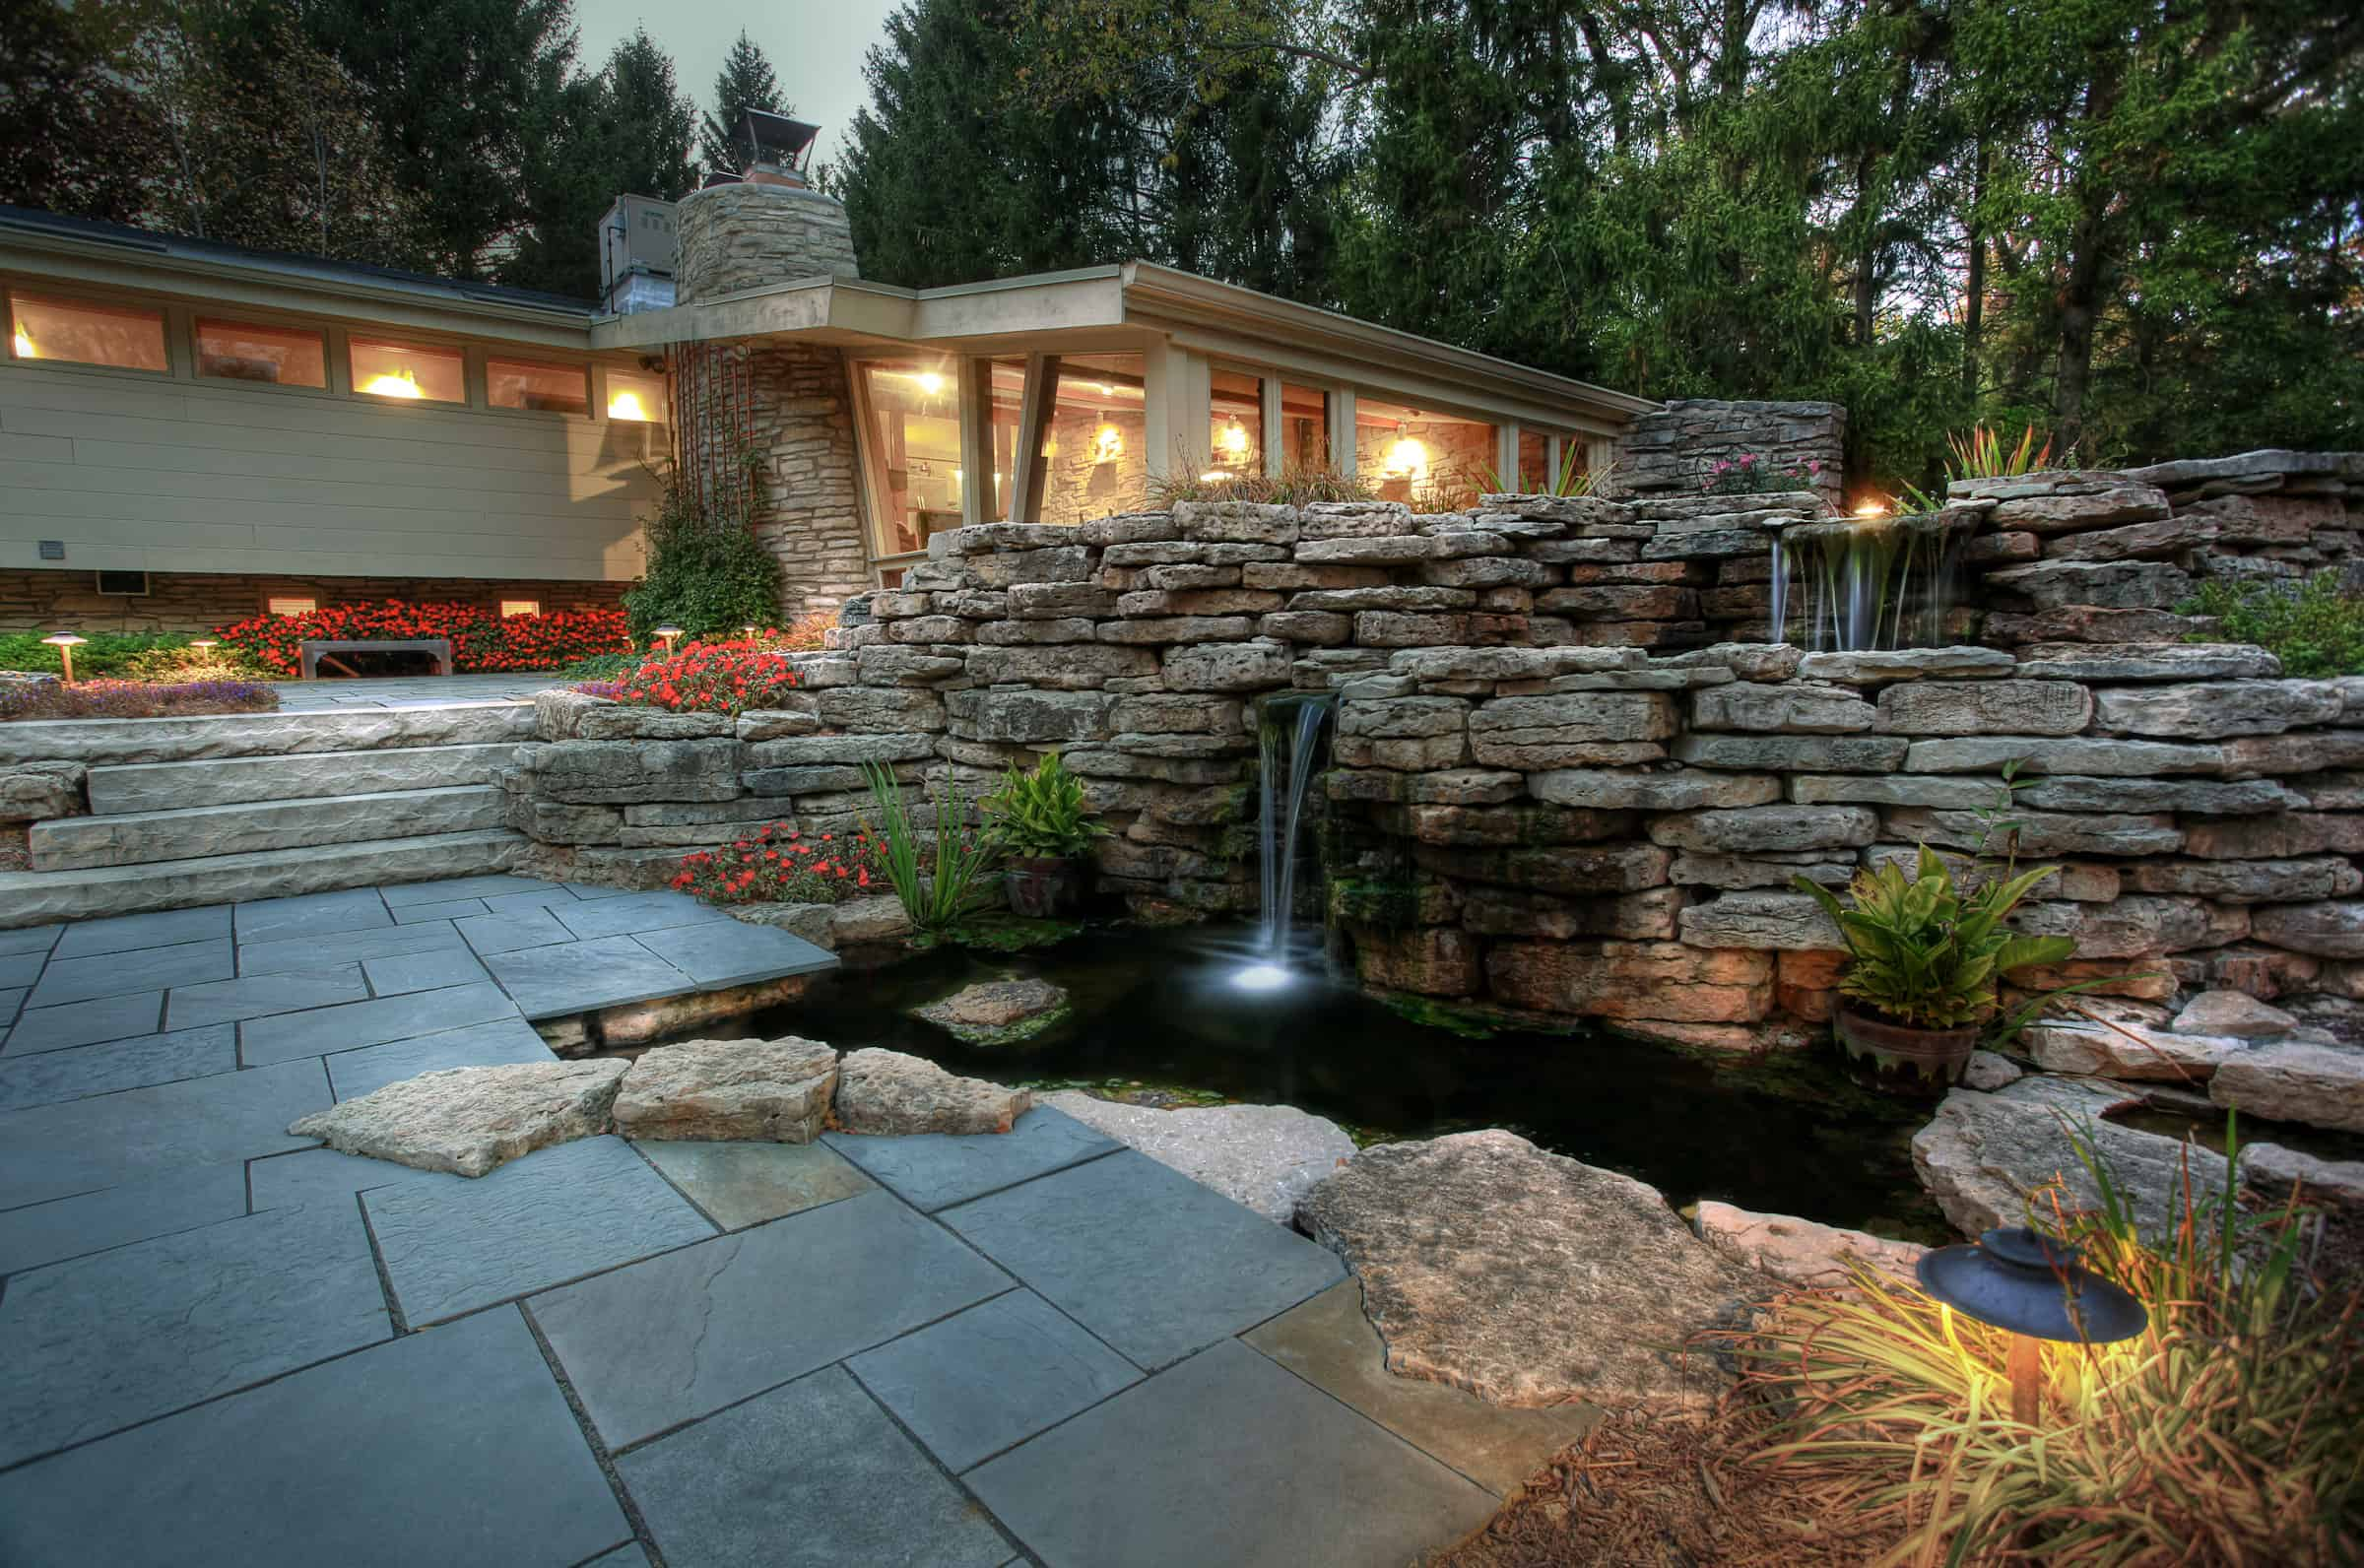 Beautiful Outdoor Koi Pond at Home